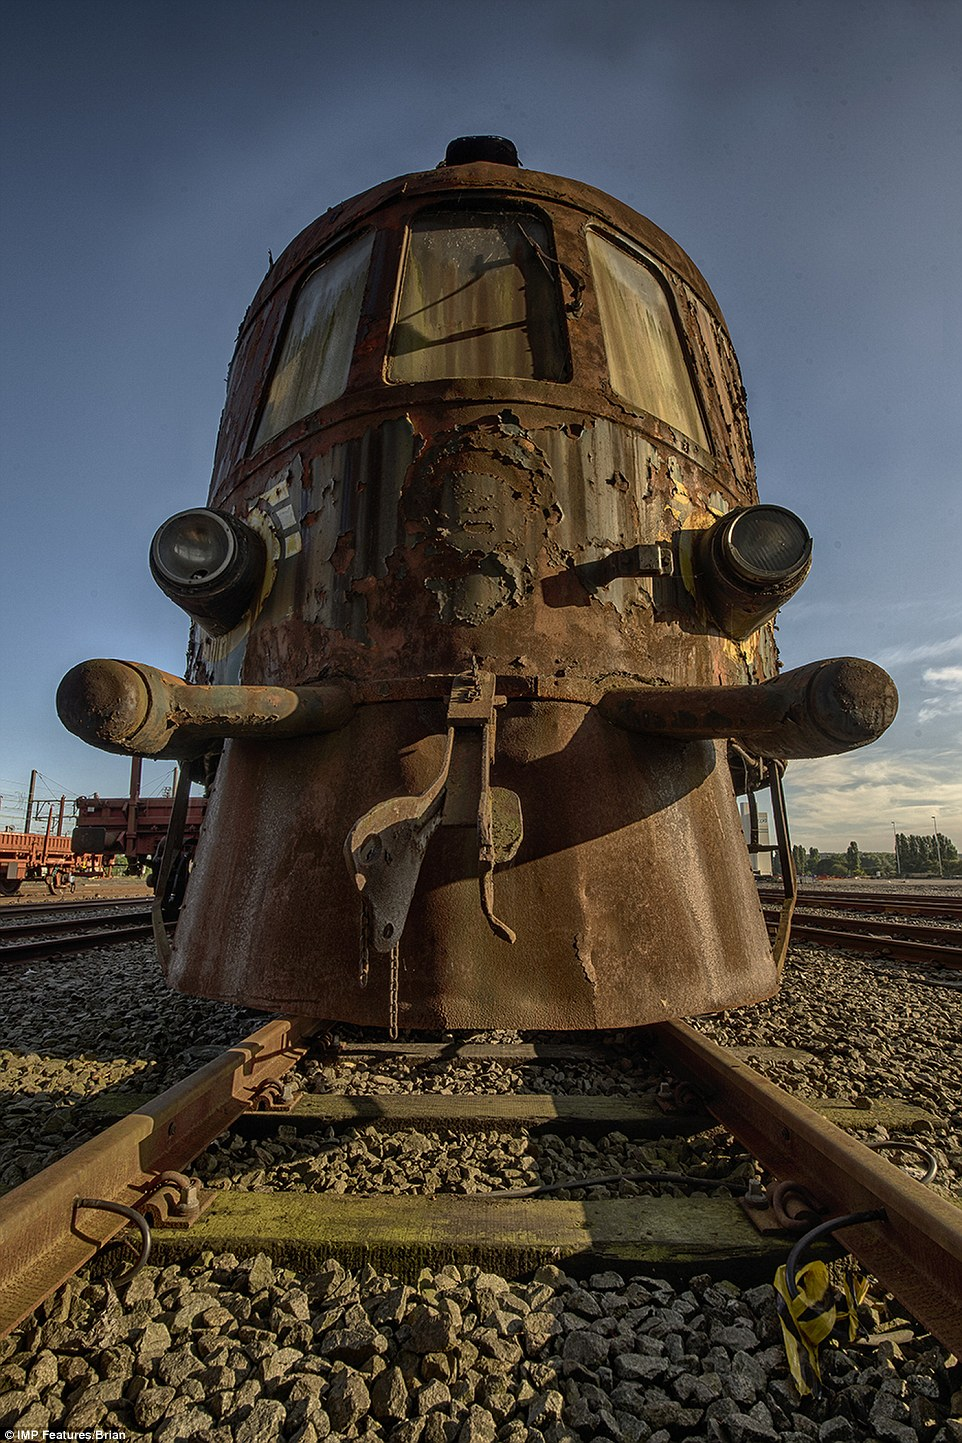 The abandoned locomotive and carriage have become a popular attraction for photographers and adventurers